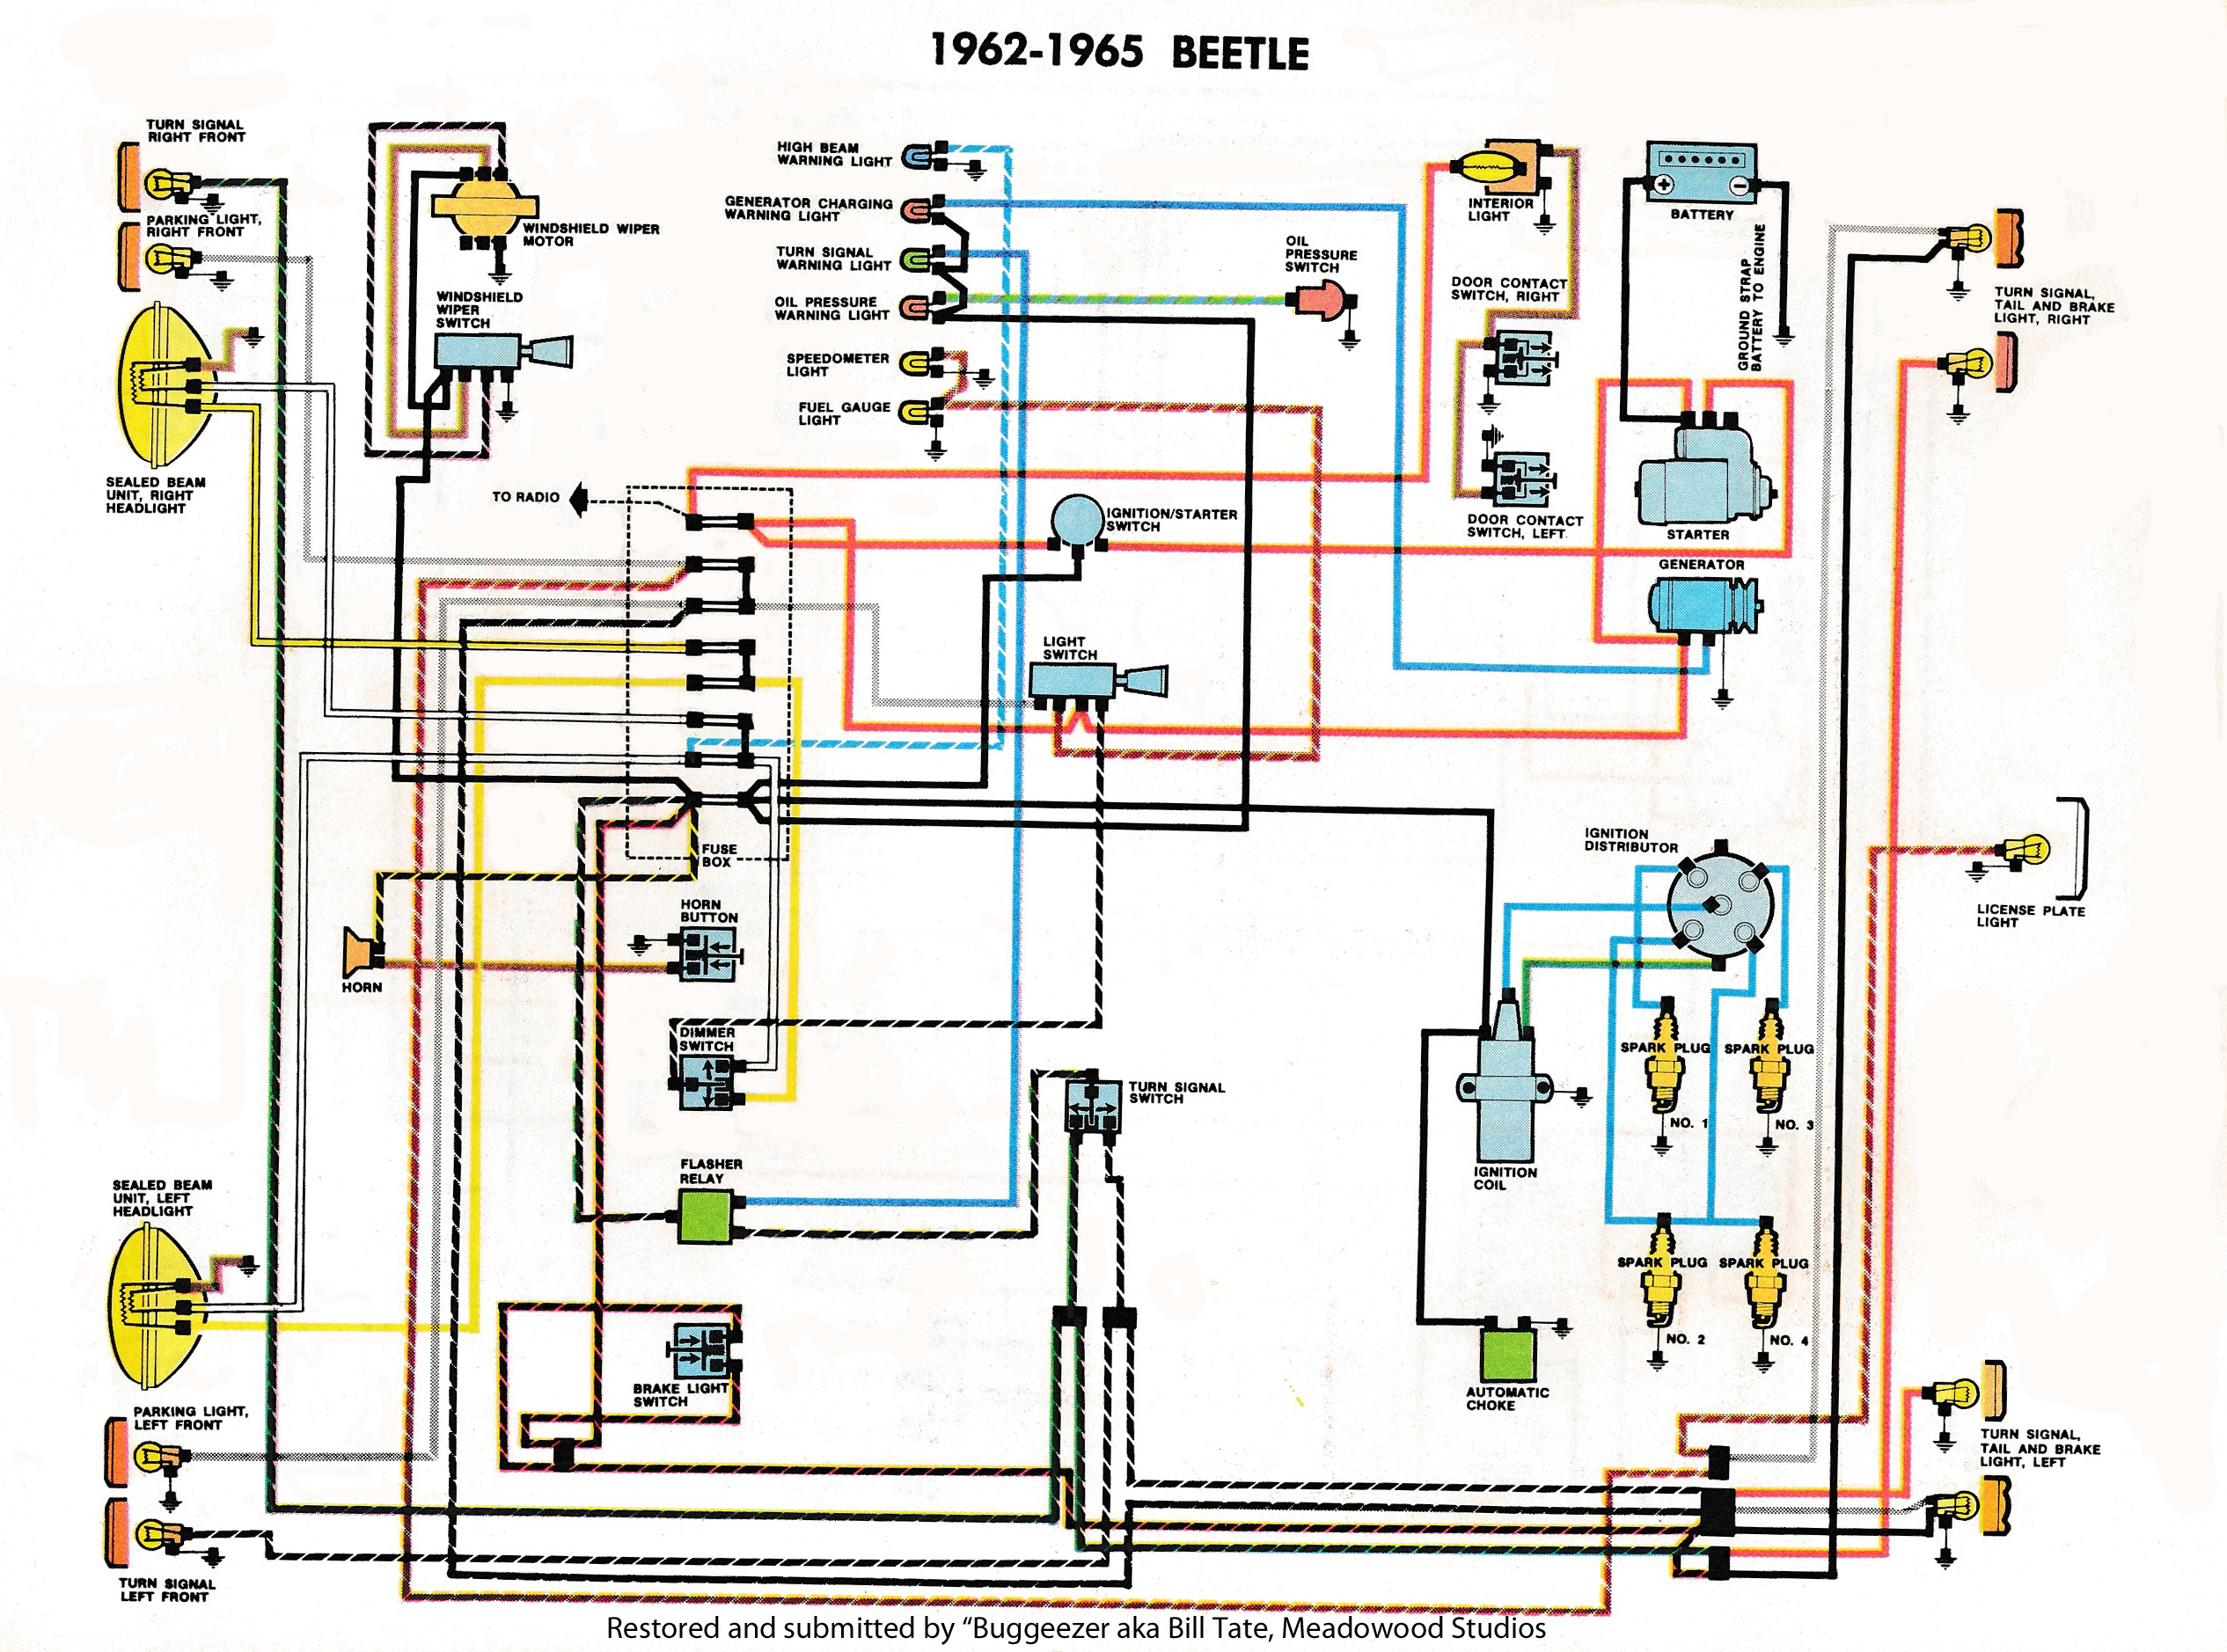 1970 Vw Beetle Turn Signal Wiring Diagram Free For Karmann Ghia Thesamba Com Type 1 Diagrams Rh 1979 70